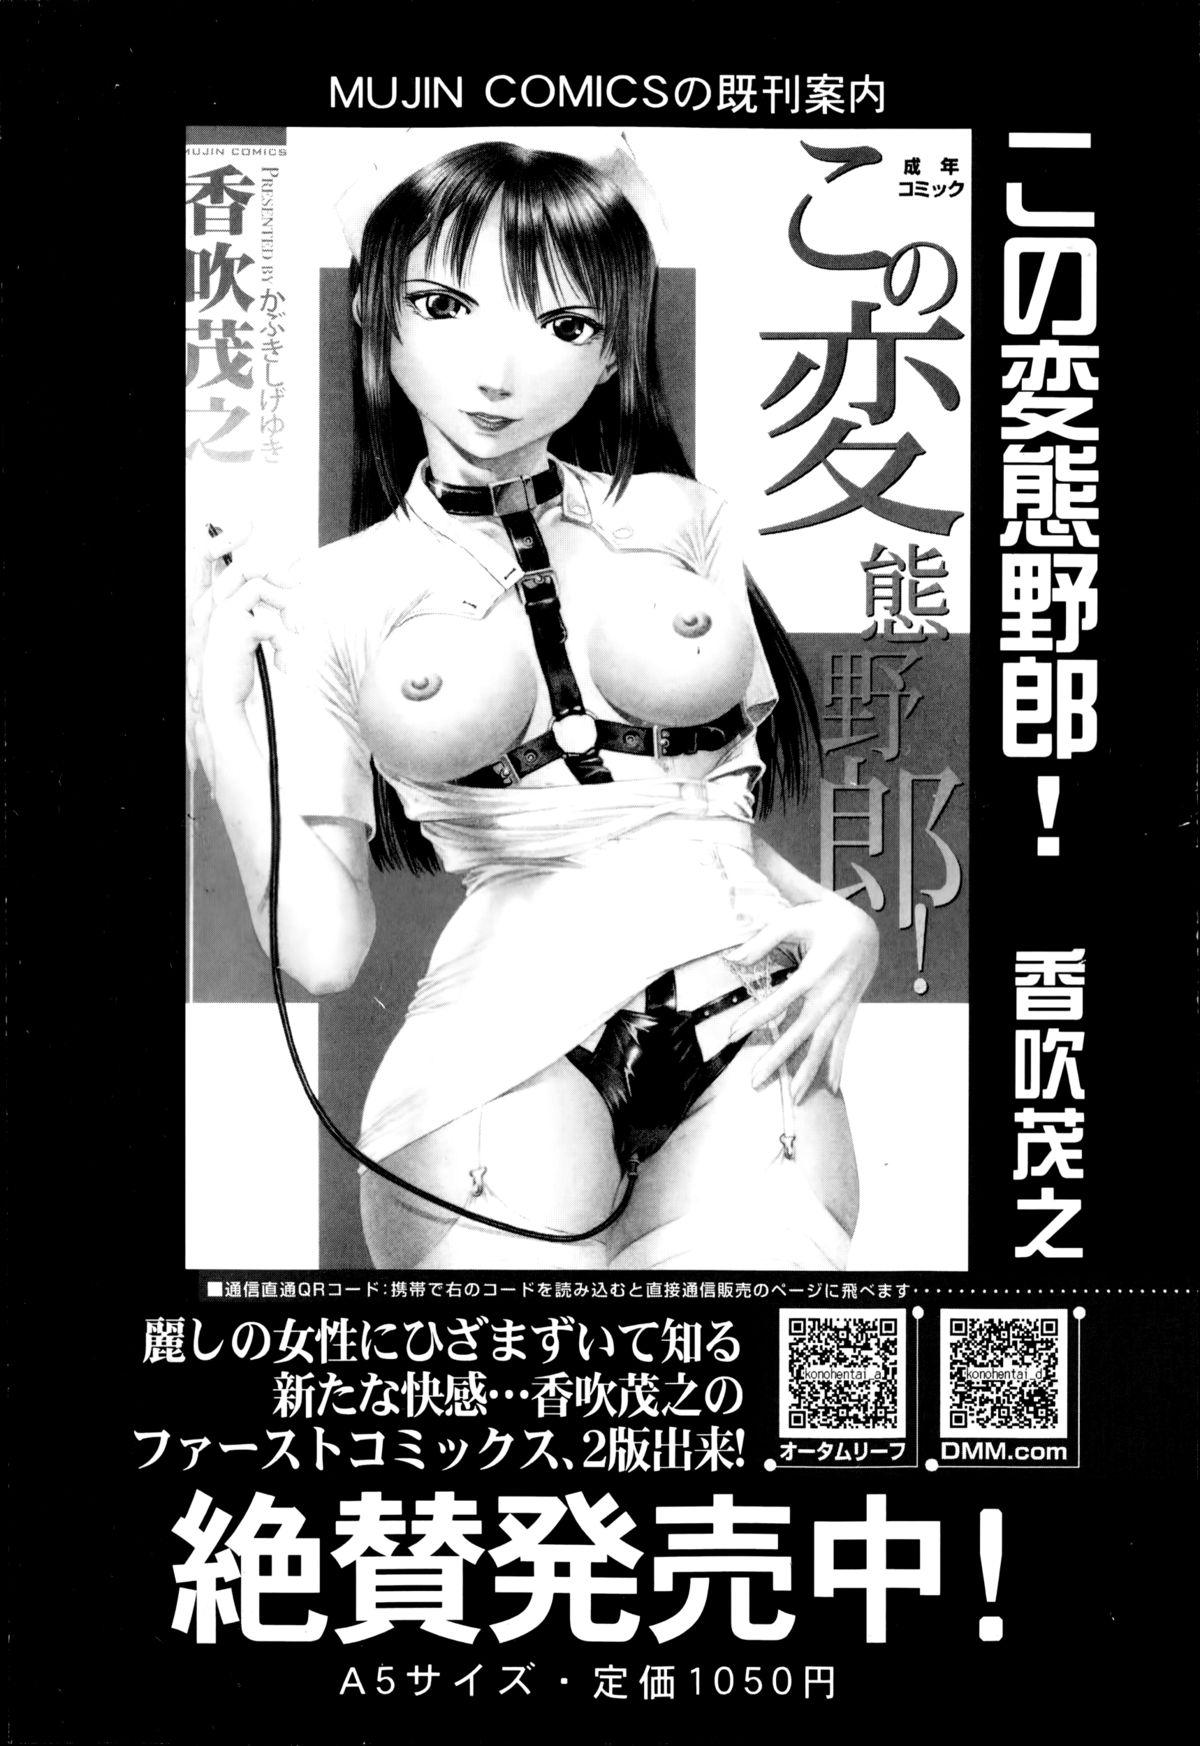 BUSTER COMIC 2014-09 367